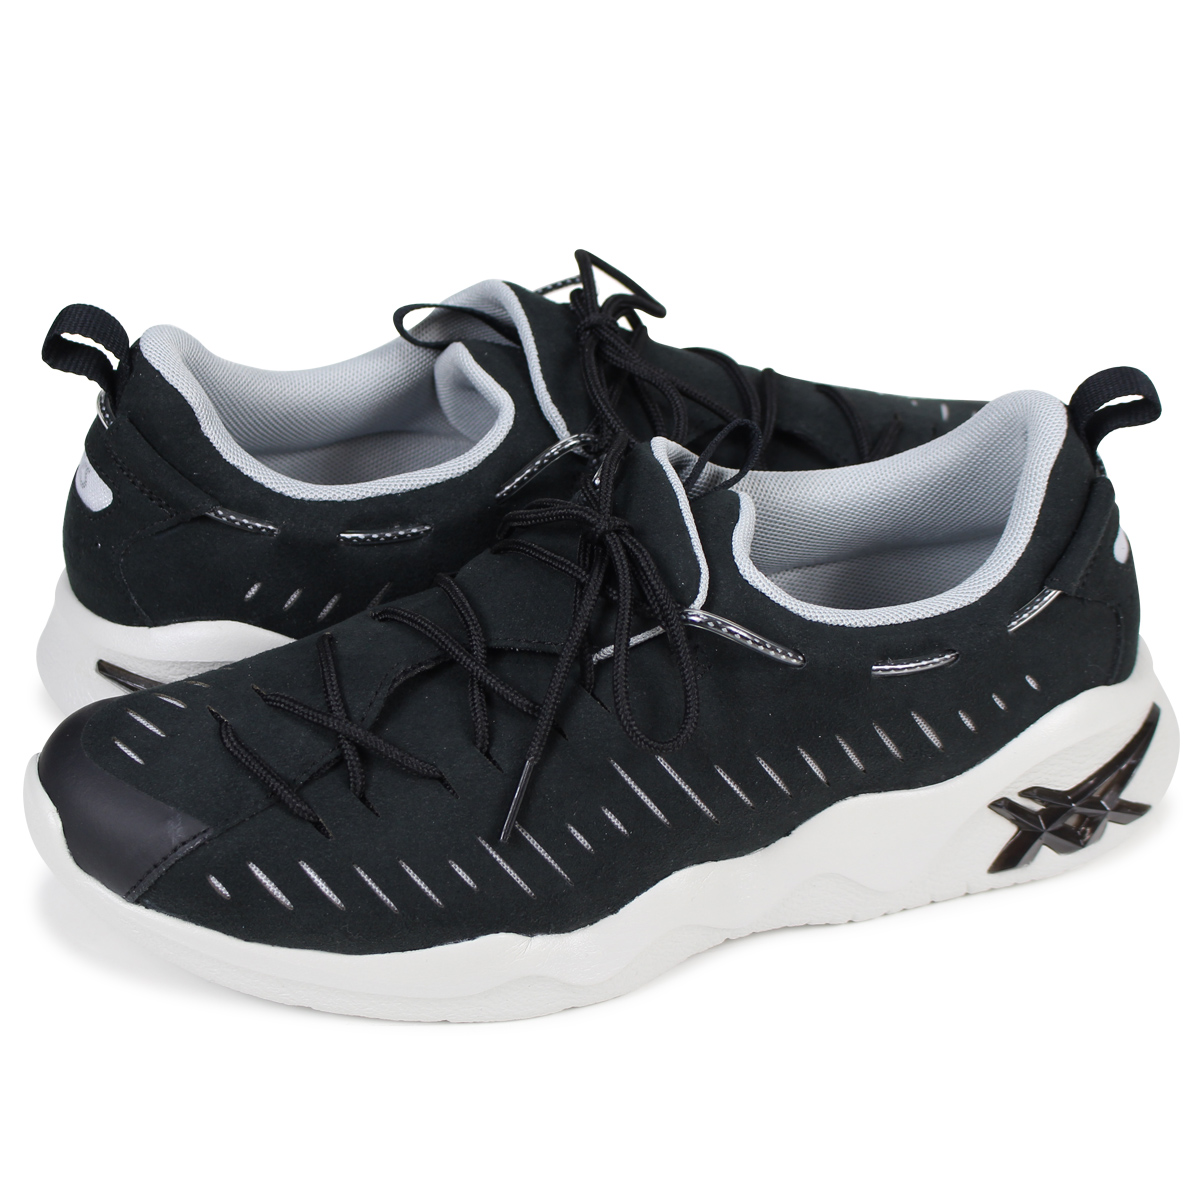 10d5ff5cfcac asics Tiger GEL-MAI RB ASICS tiger gel Mai sneakers H802N-9090 men black   2 17 Shinnyu load   182